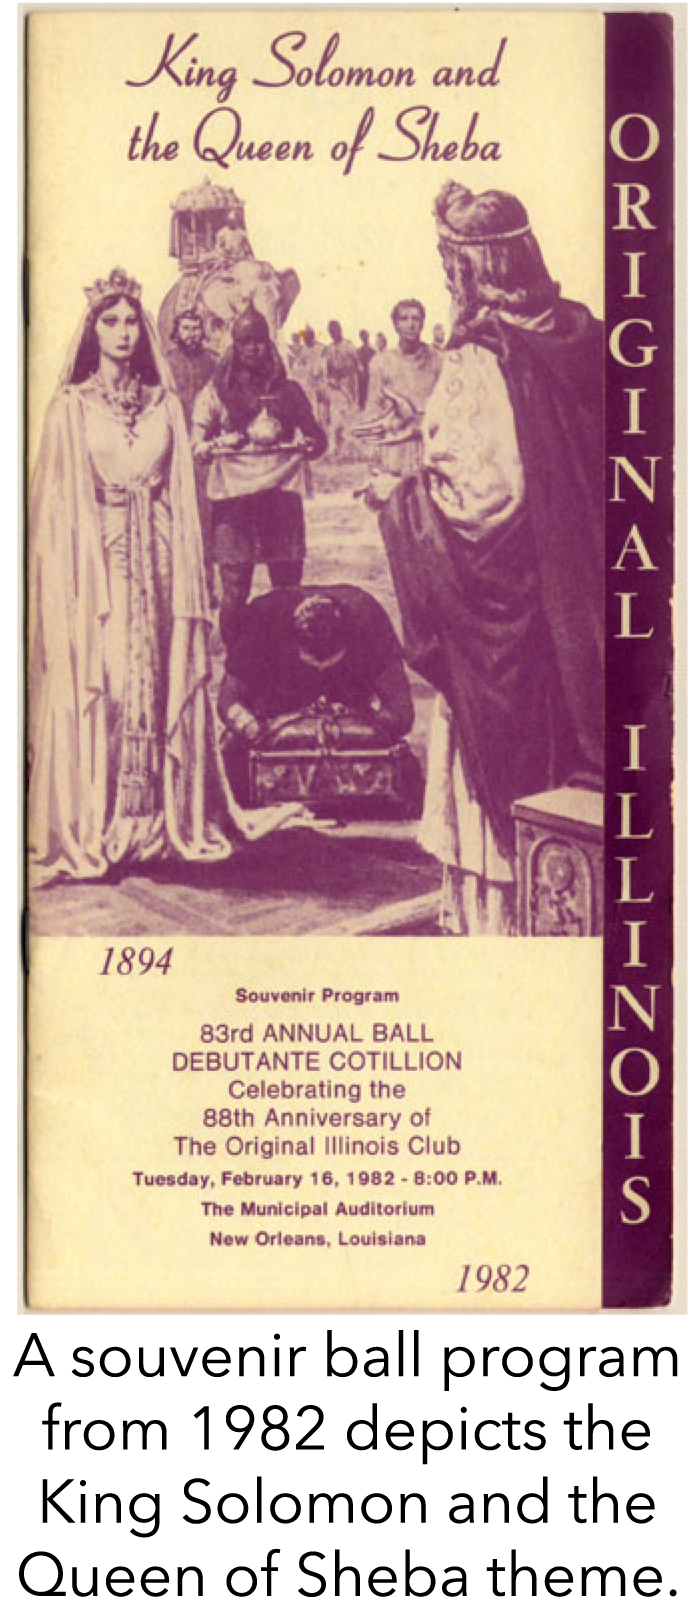 A souvenir ball program from 1982 depicts the King Solomon and the Queen of Sheba theme.